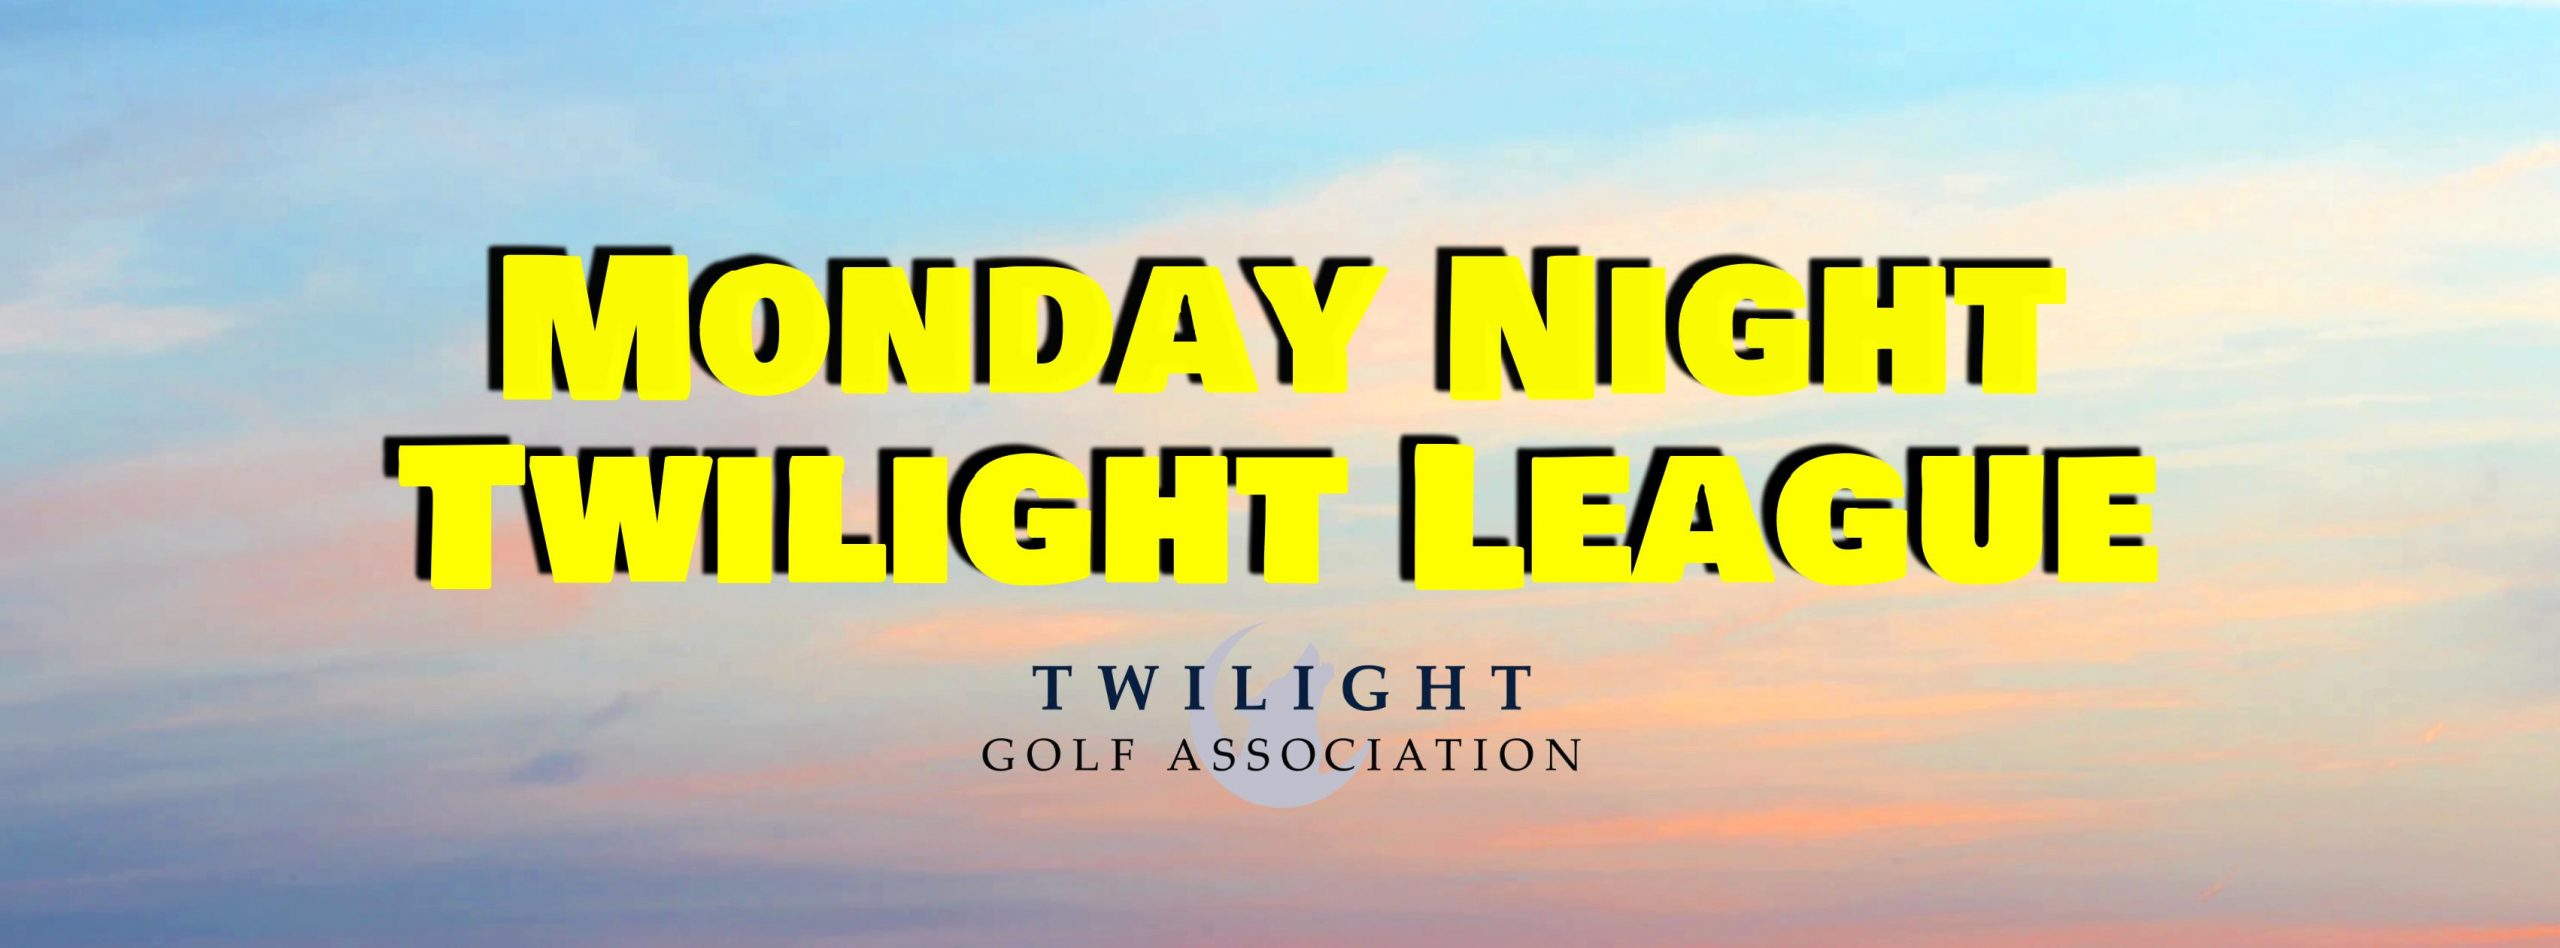 Monday Twilight League at Sycamore Creek Golf Course